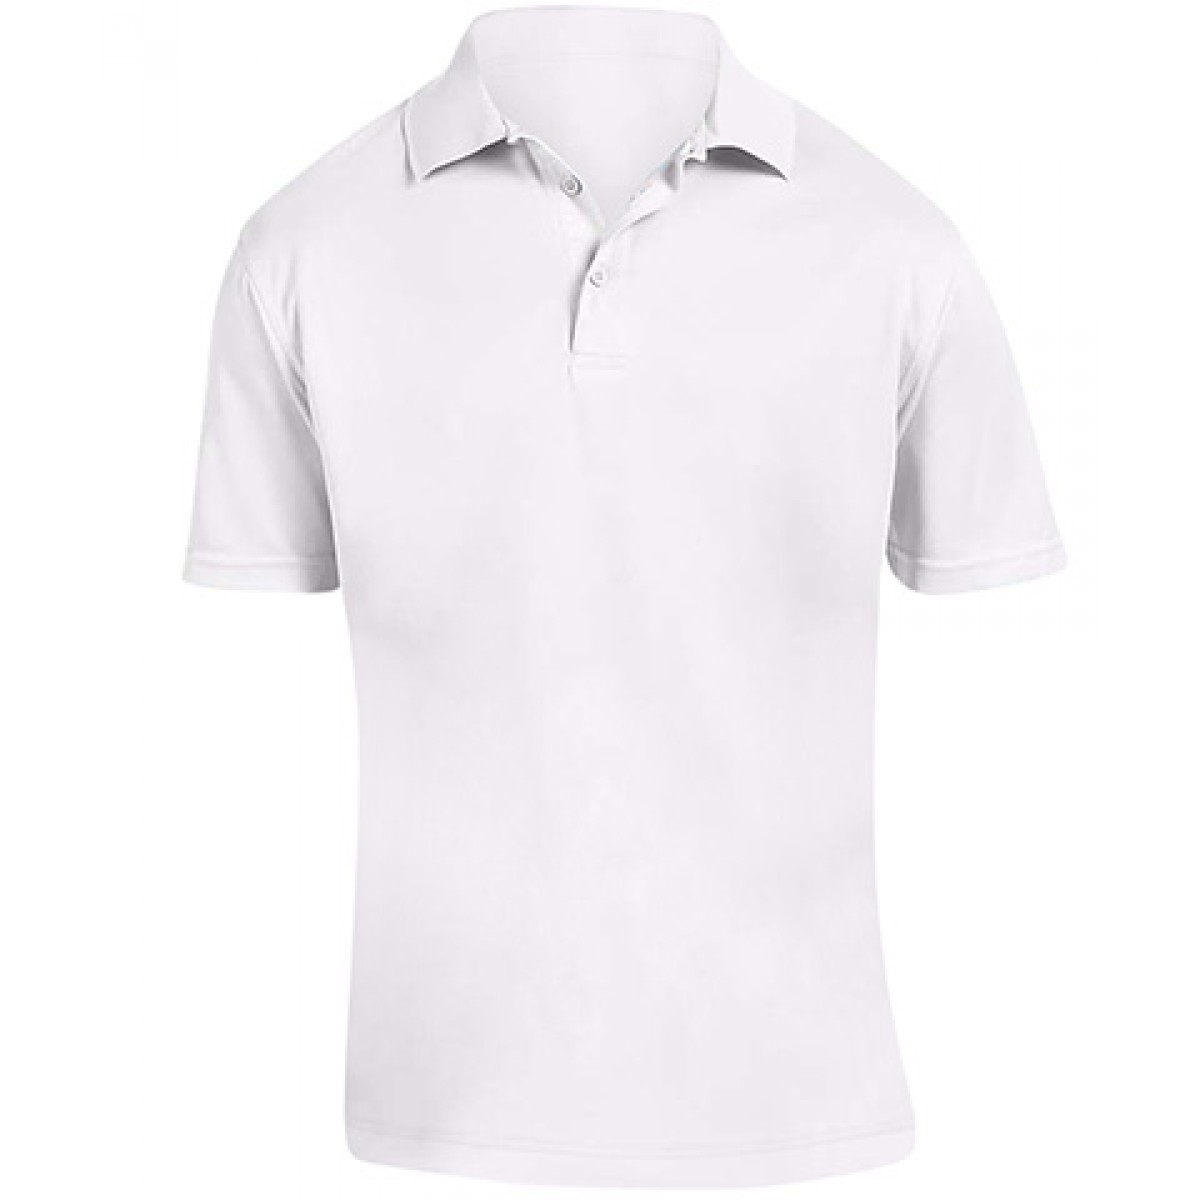 Men's 4 oz. Polytech Polo-White-XL